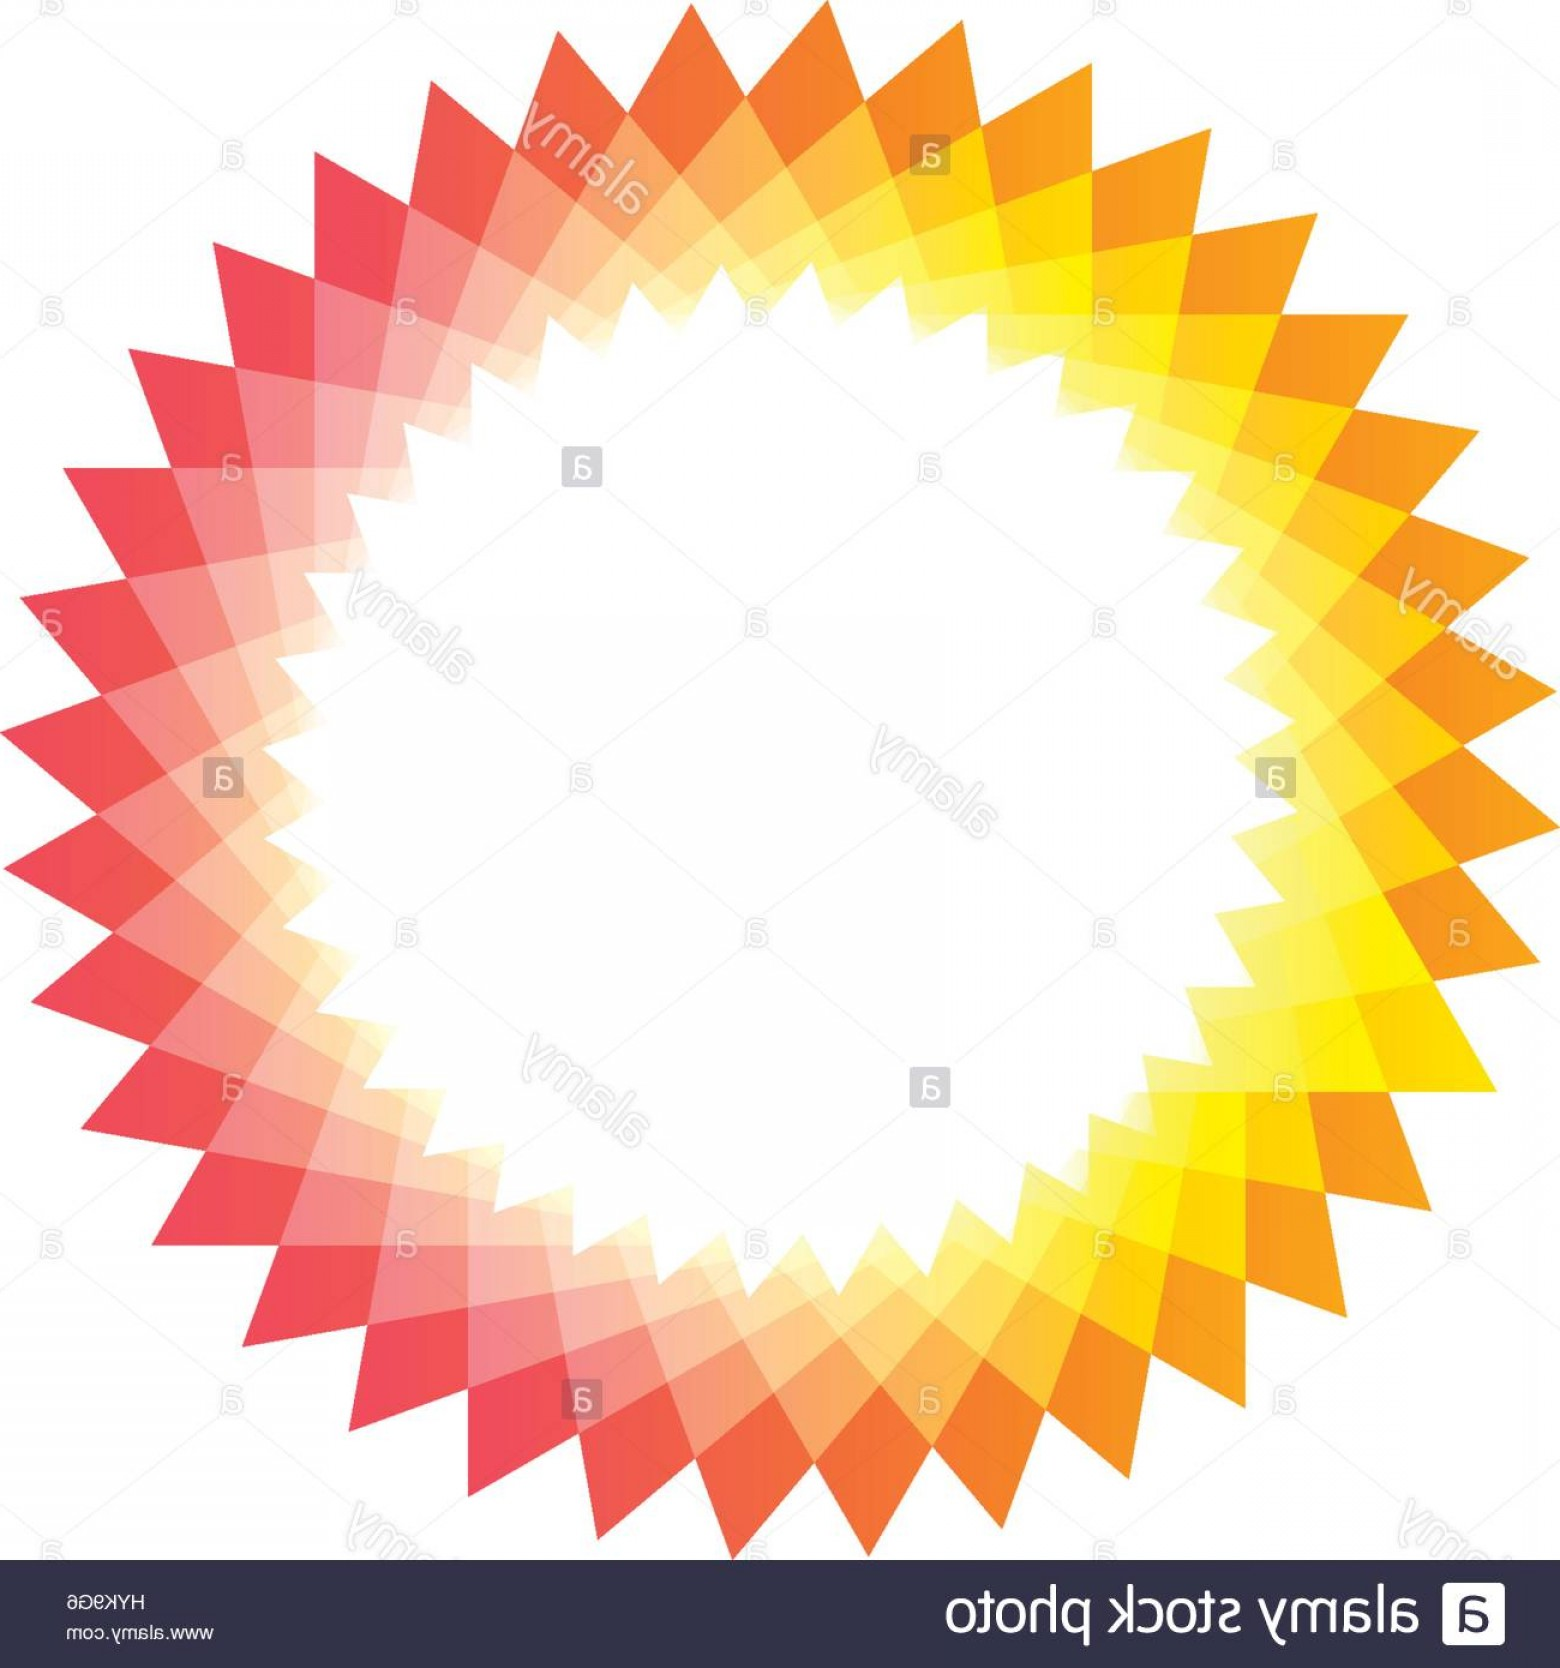 Absract Shape Logo Vector: Stock Photo Isolated Pink And Yellow Color Sun Logotype Abstract Round Shape Logo